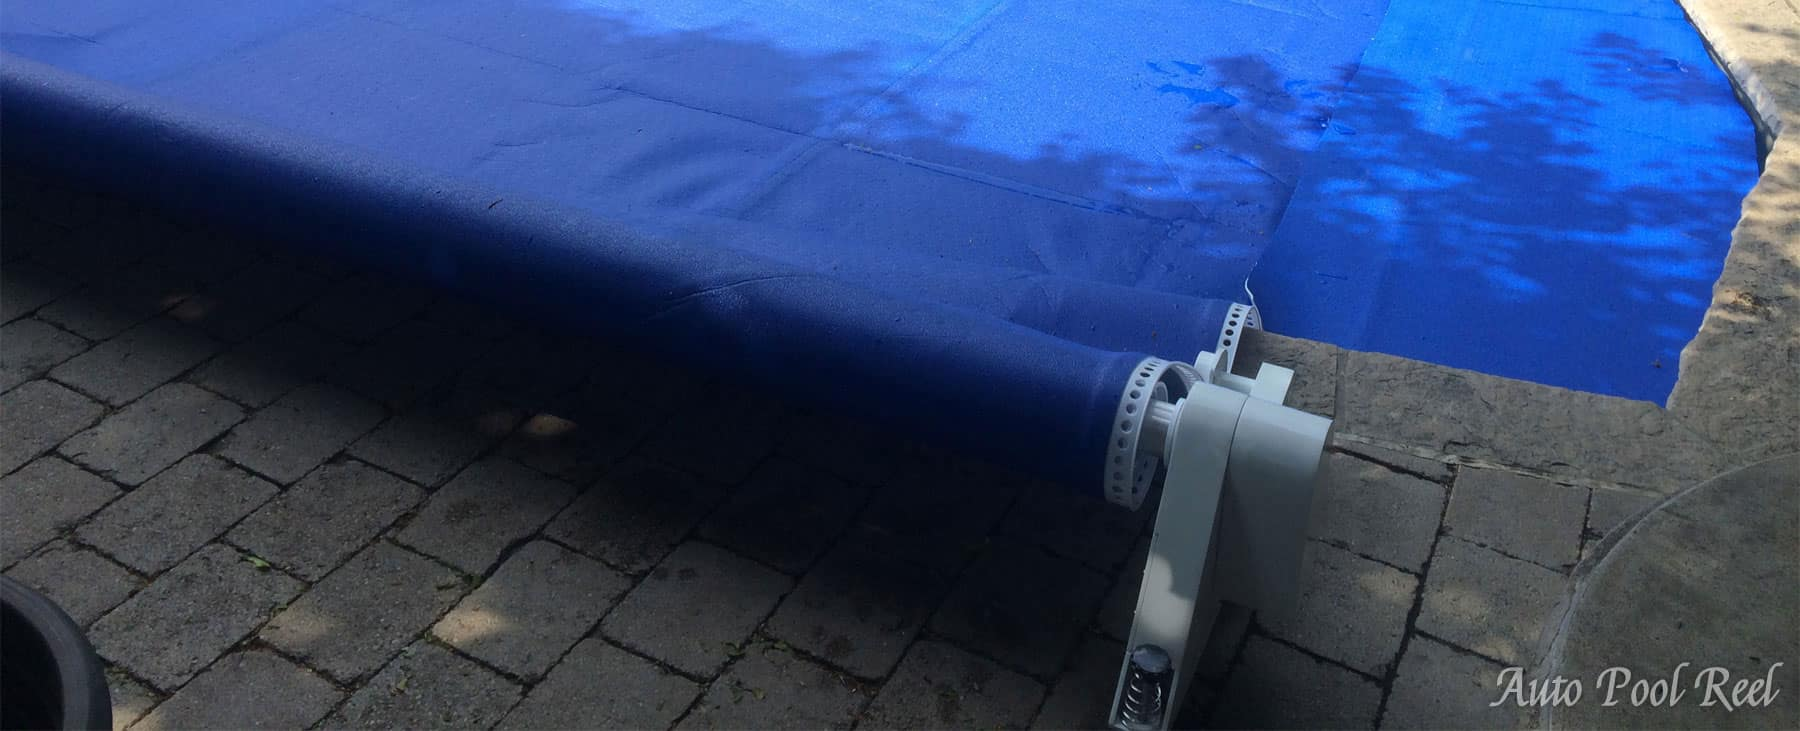 Automatic Pool Cover close up view